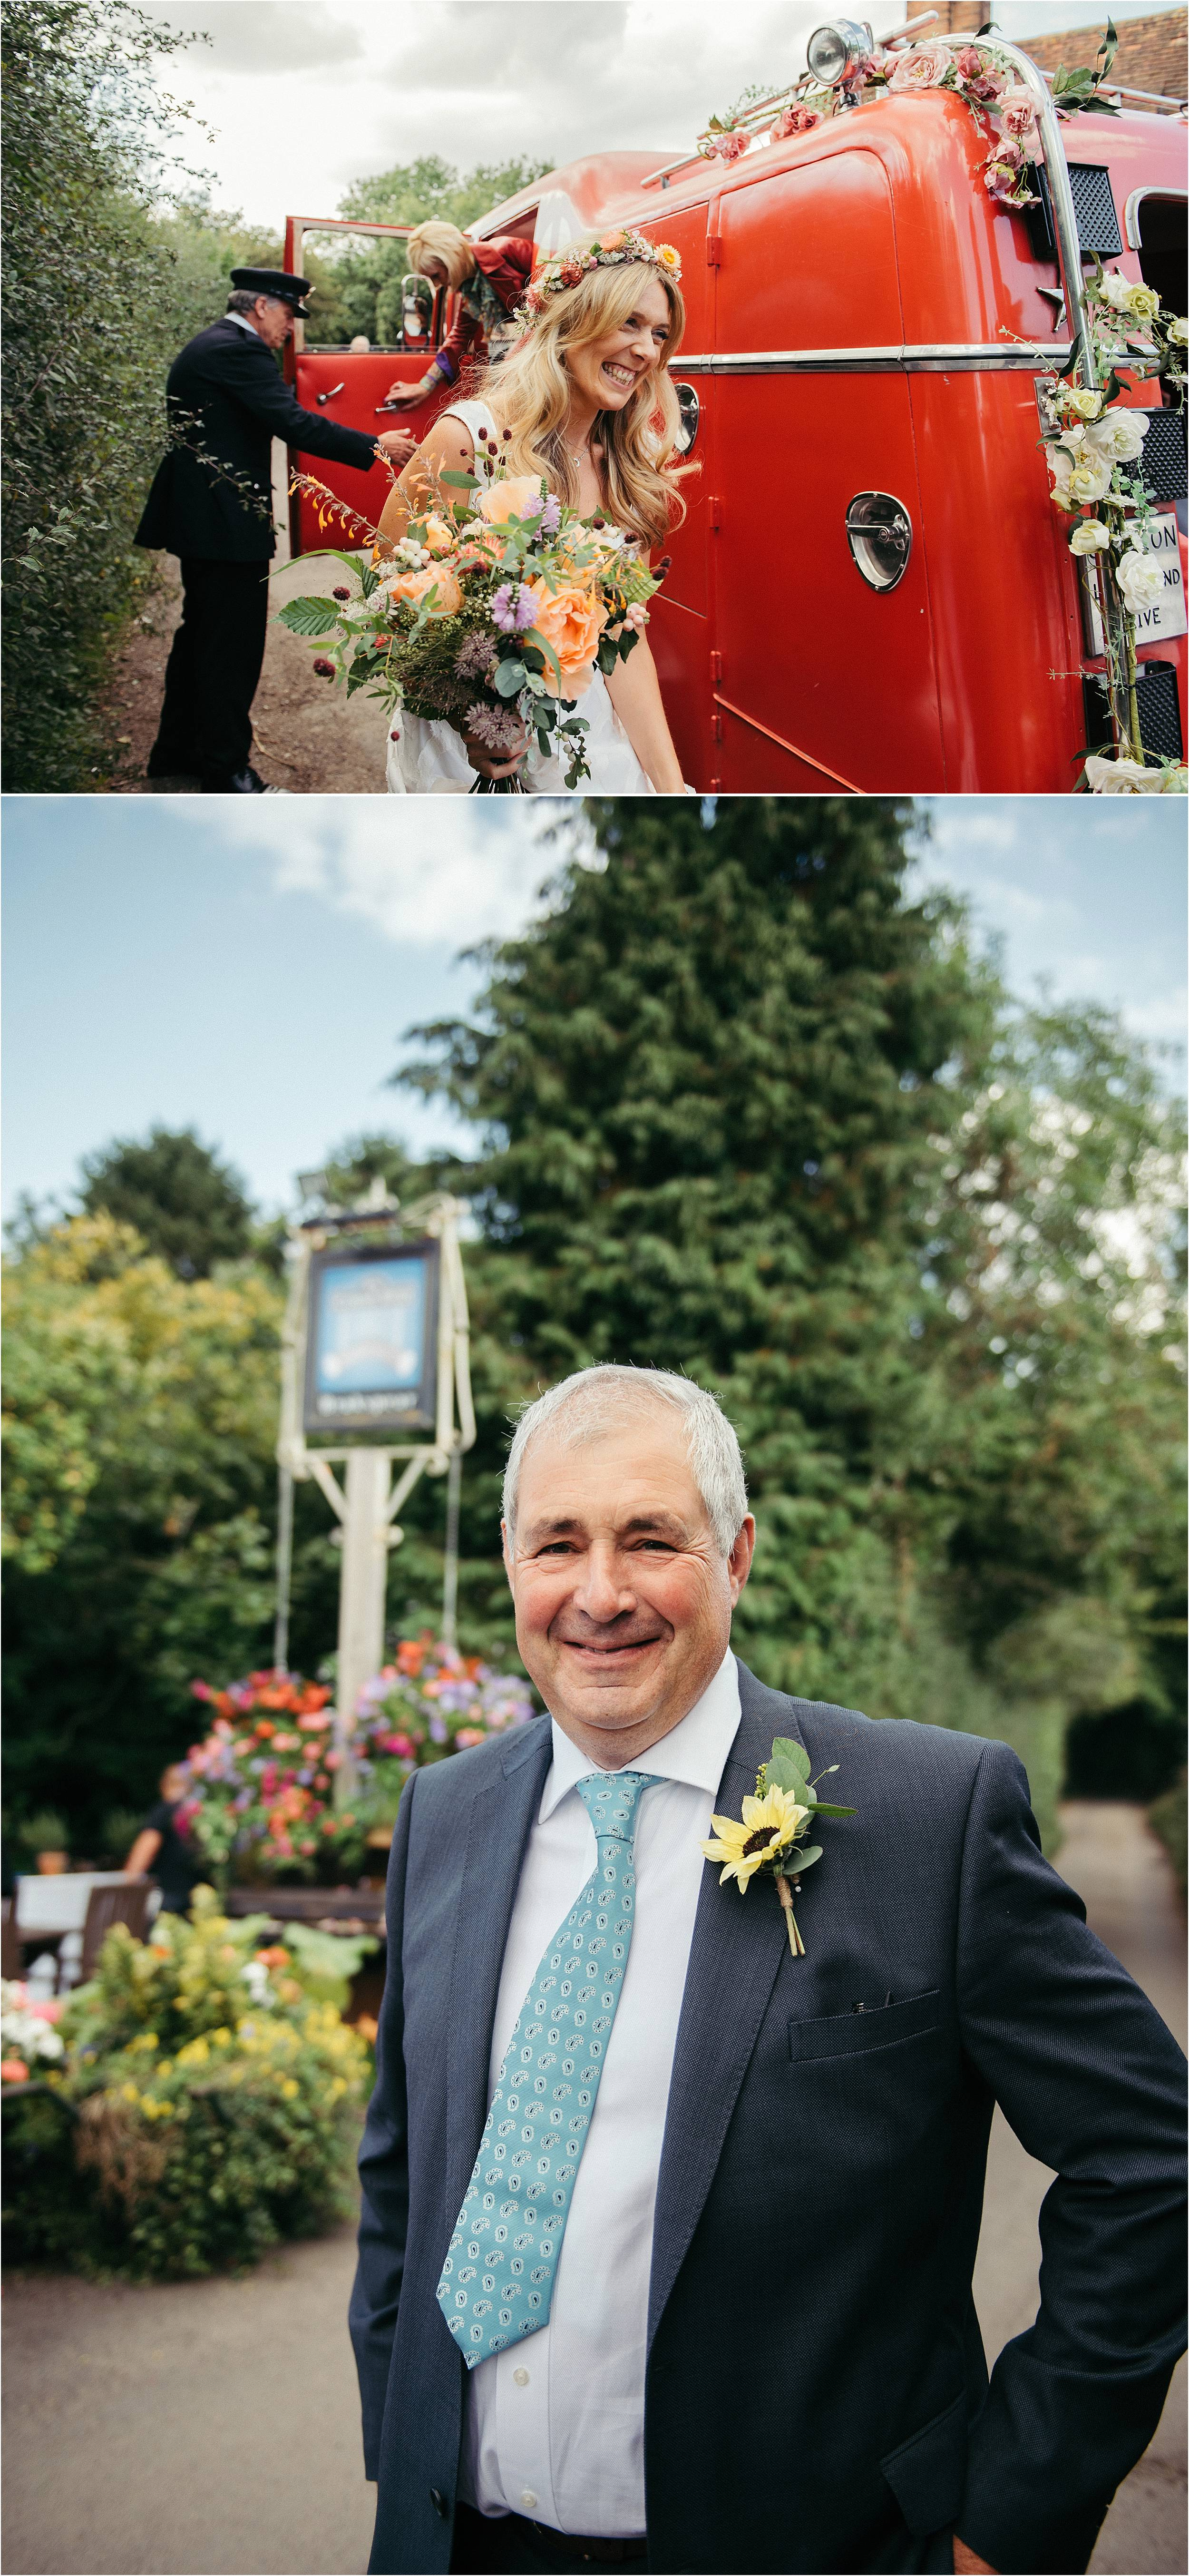 The Crooked Billet Pub Oxfordshire Wedding Photography_0038.jpg